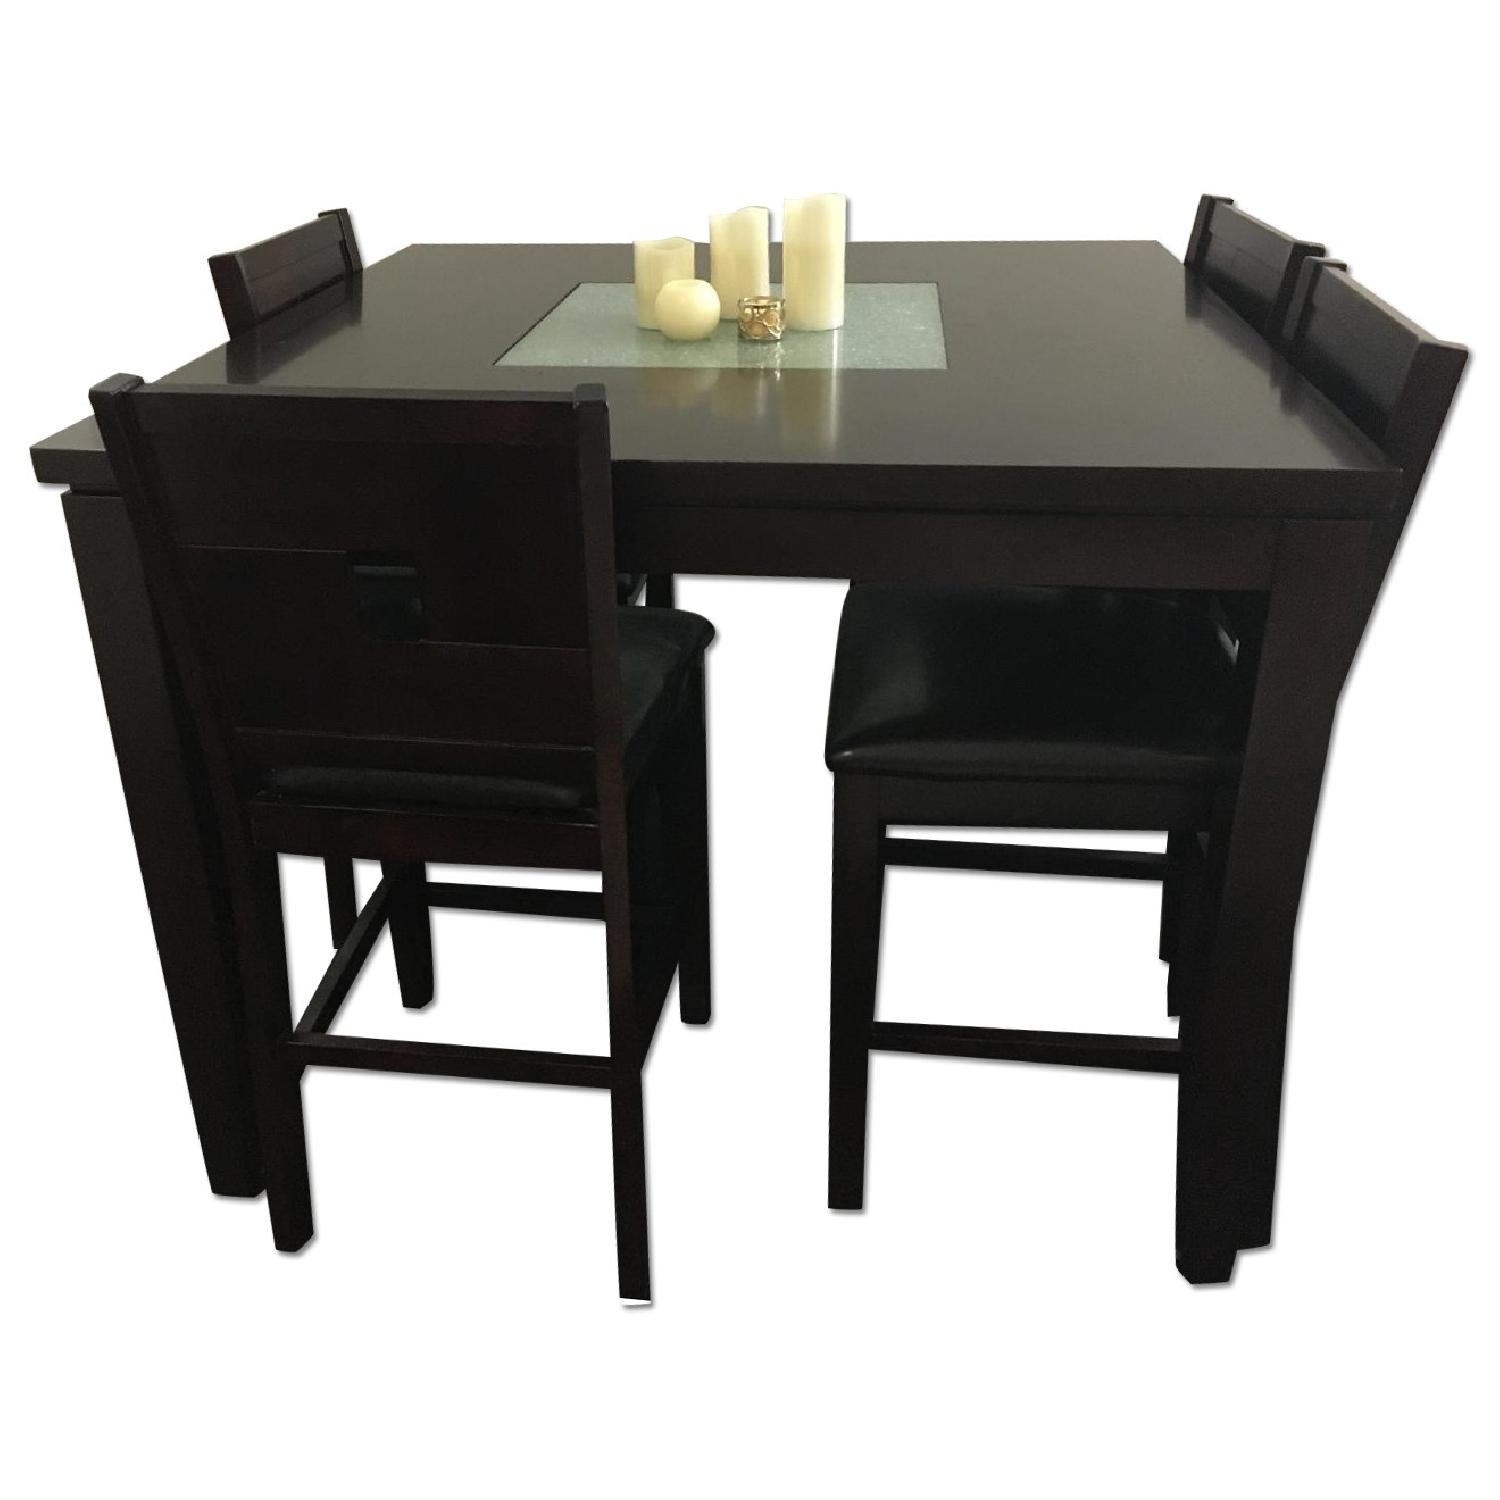 Dining Table w/ 4 Chairs + 1 Bench - image-0